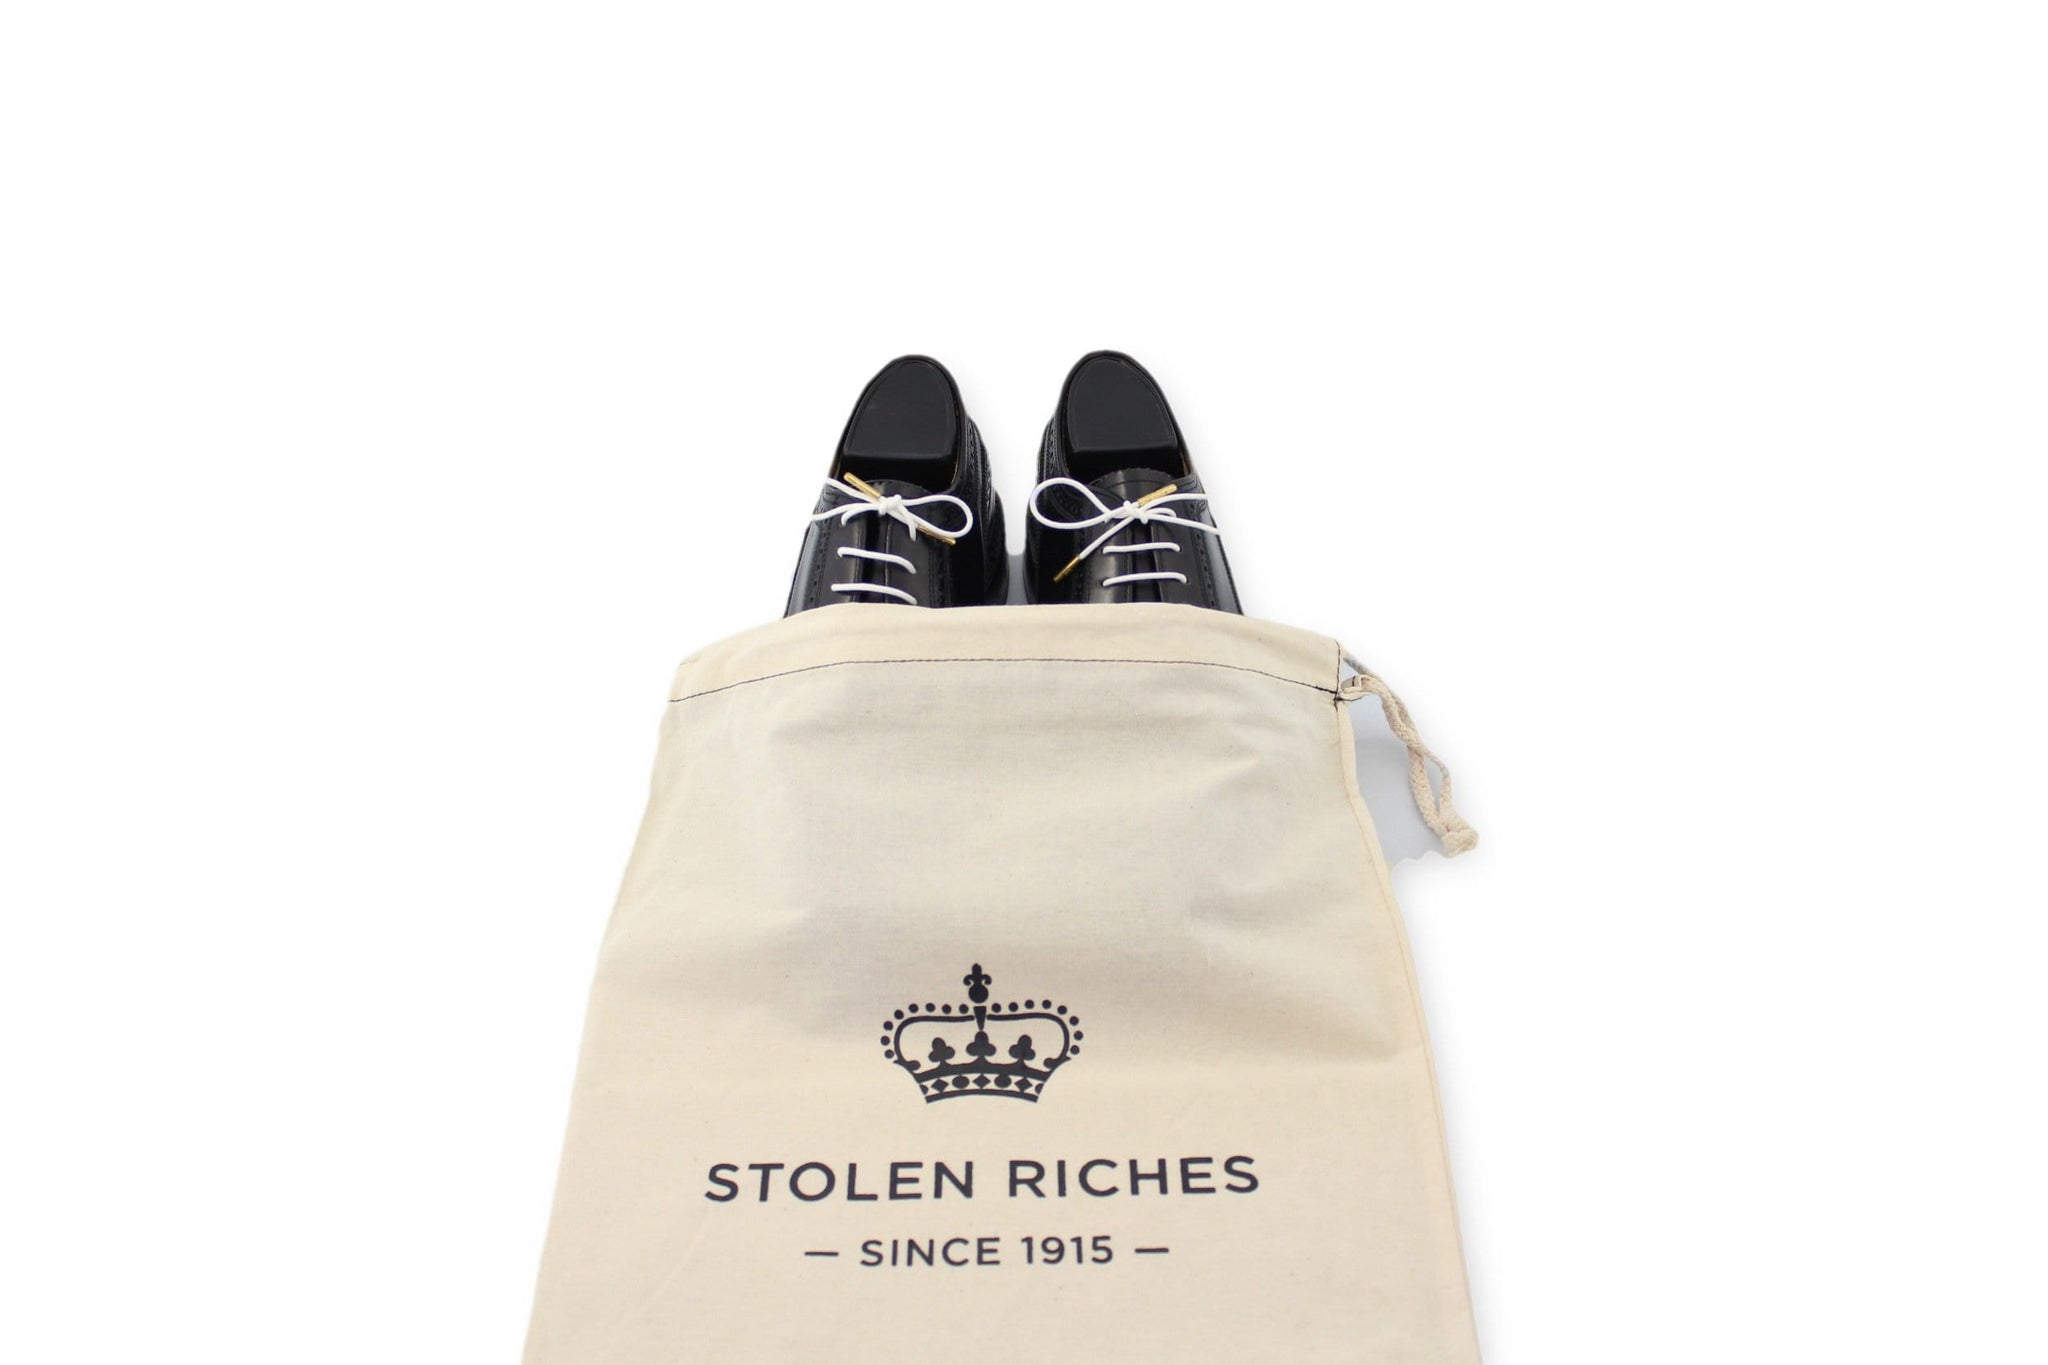 Shoe Bag - Stolen Riches